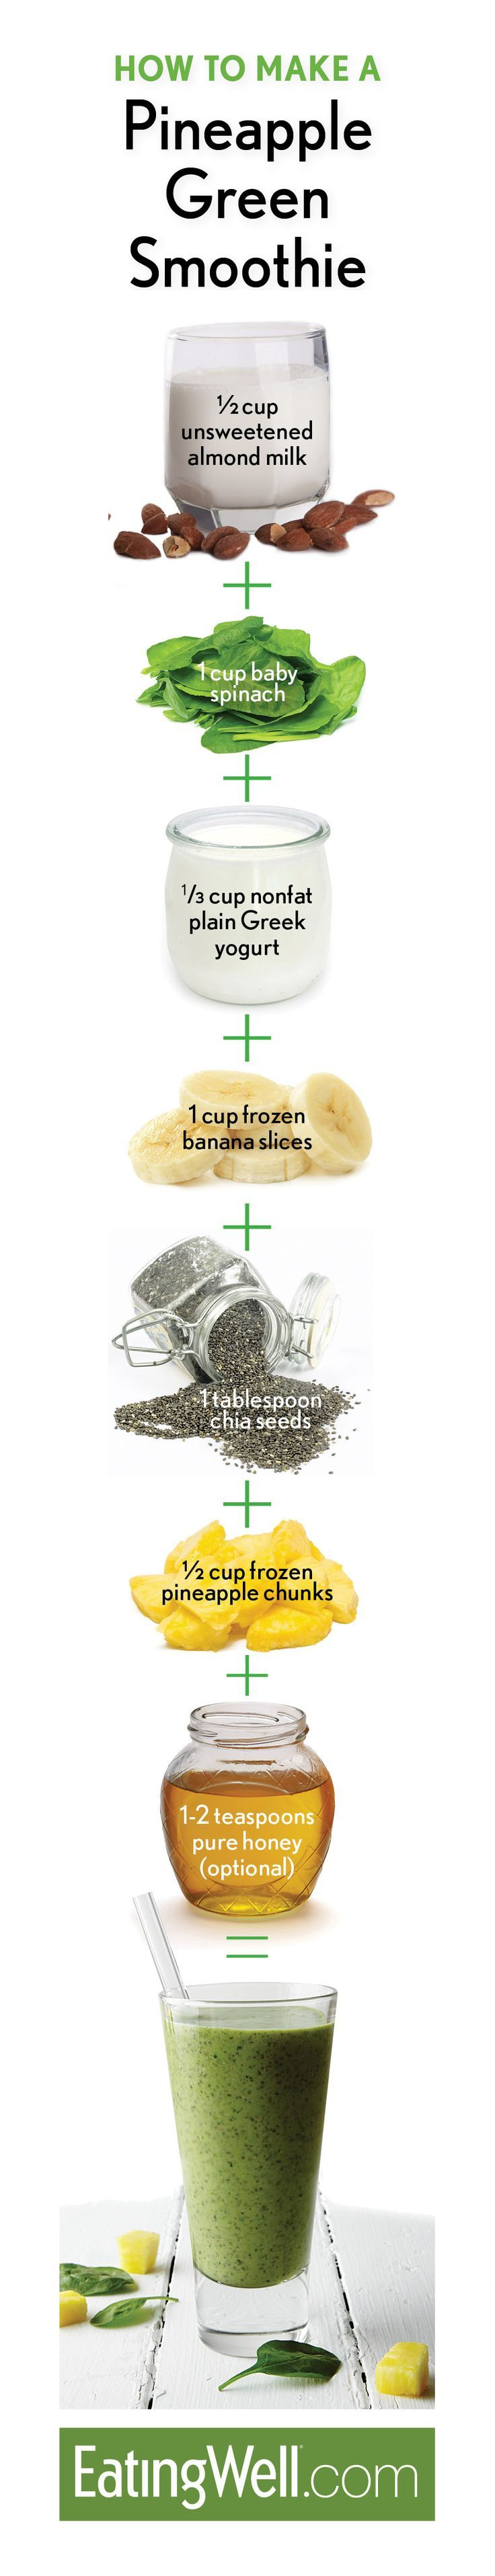 How to Make a Health  How to Make a Healthy Pineapple Green Smoothie  https://www.pinterest.com/pin/186758715776701716/   Also check out: http://kombuchaguru.com